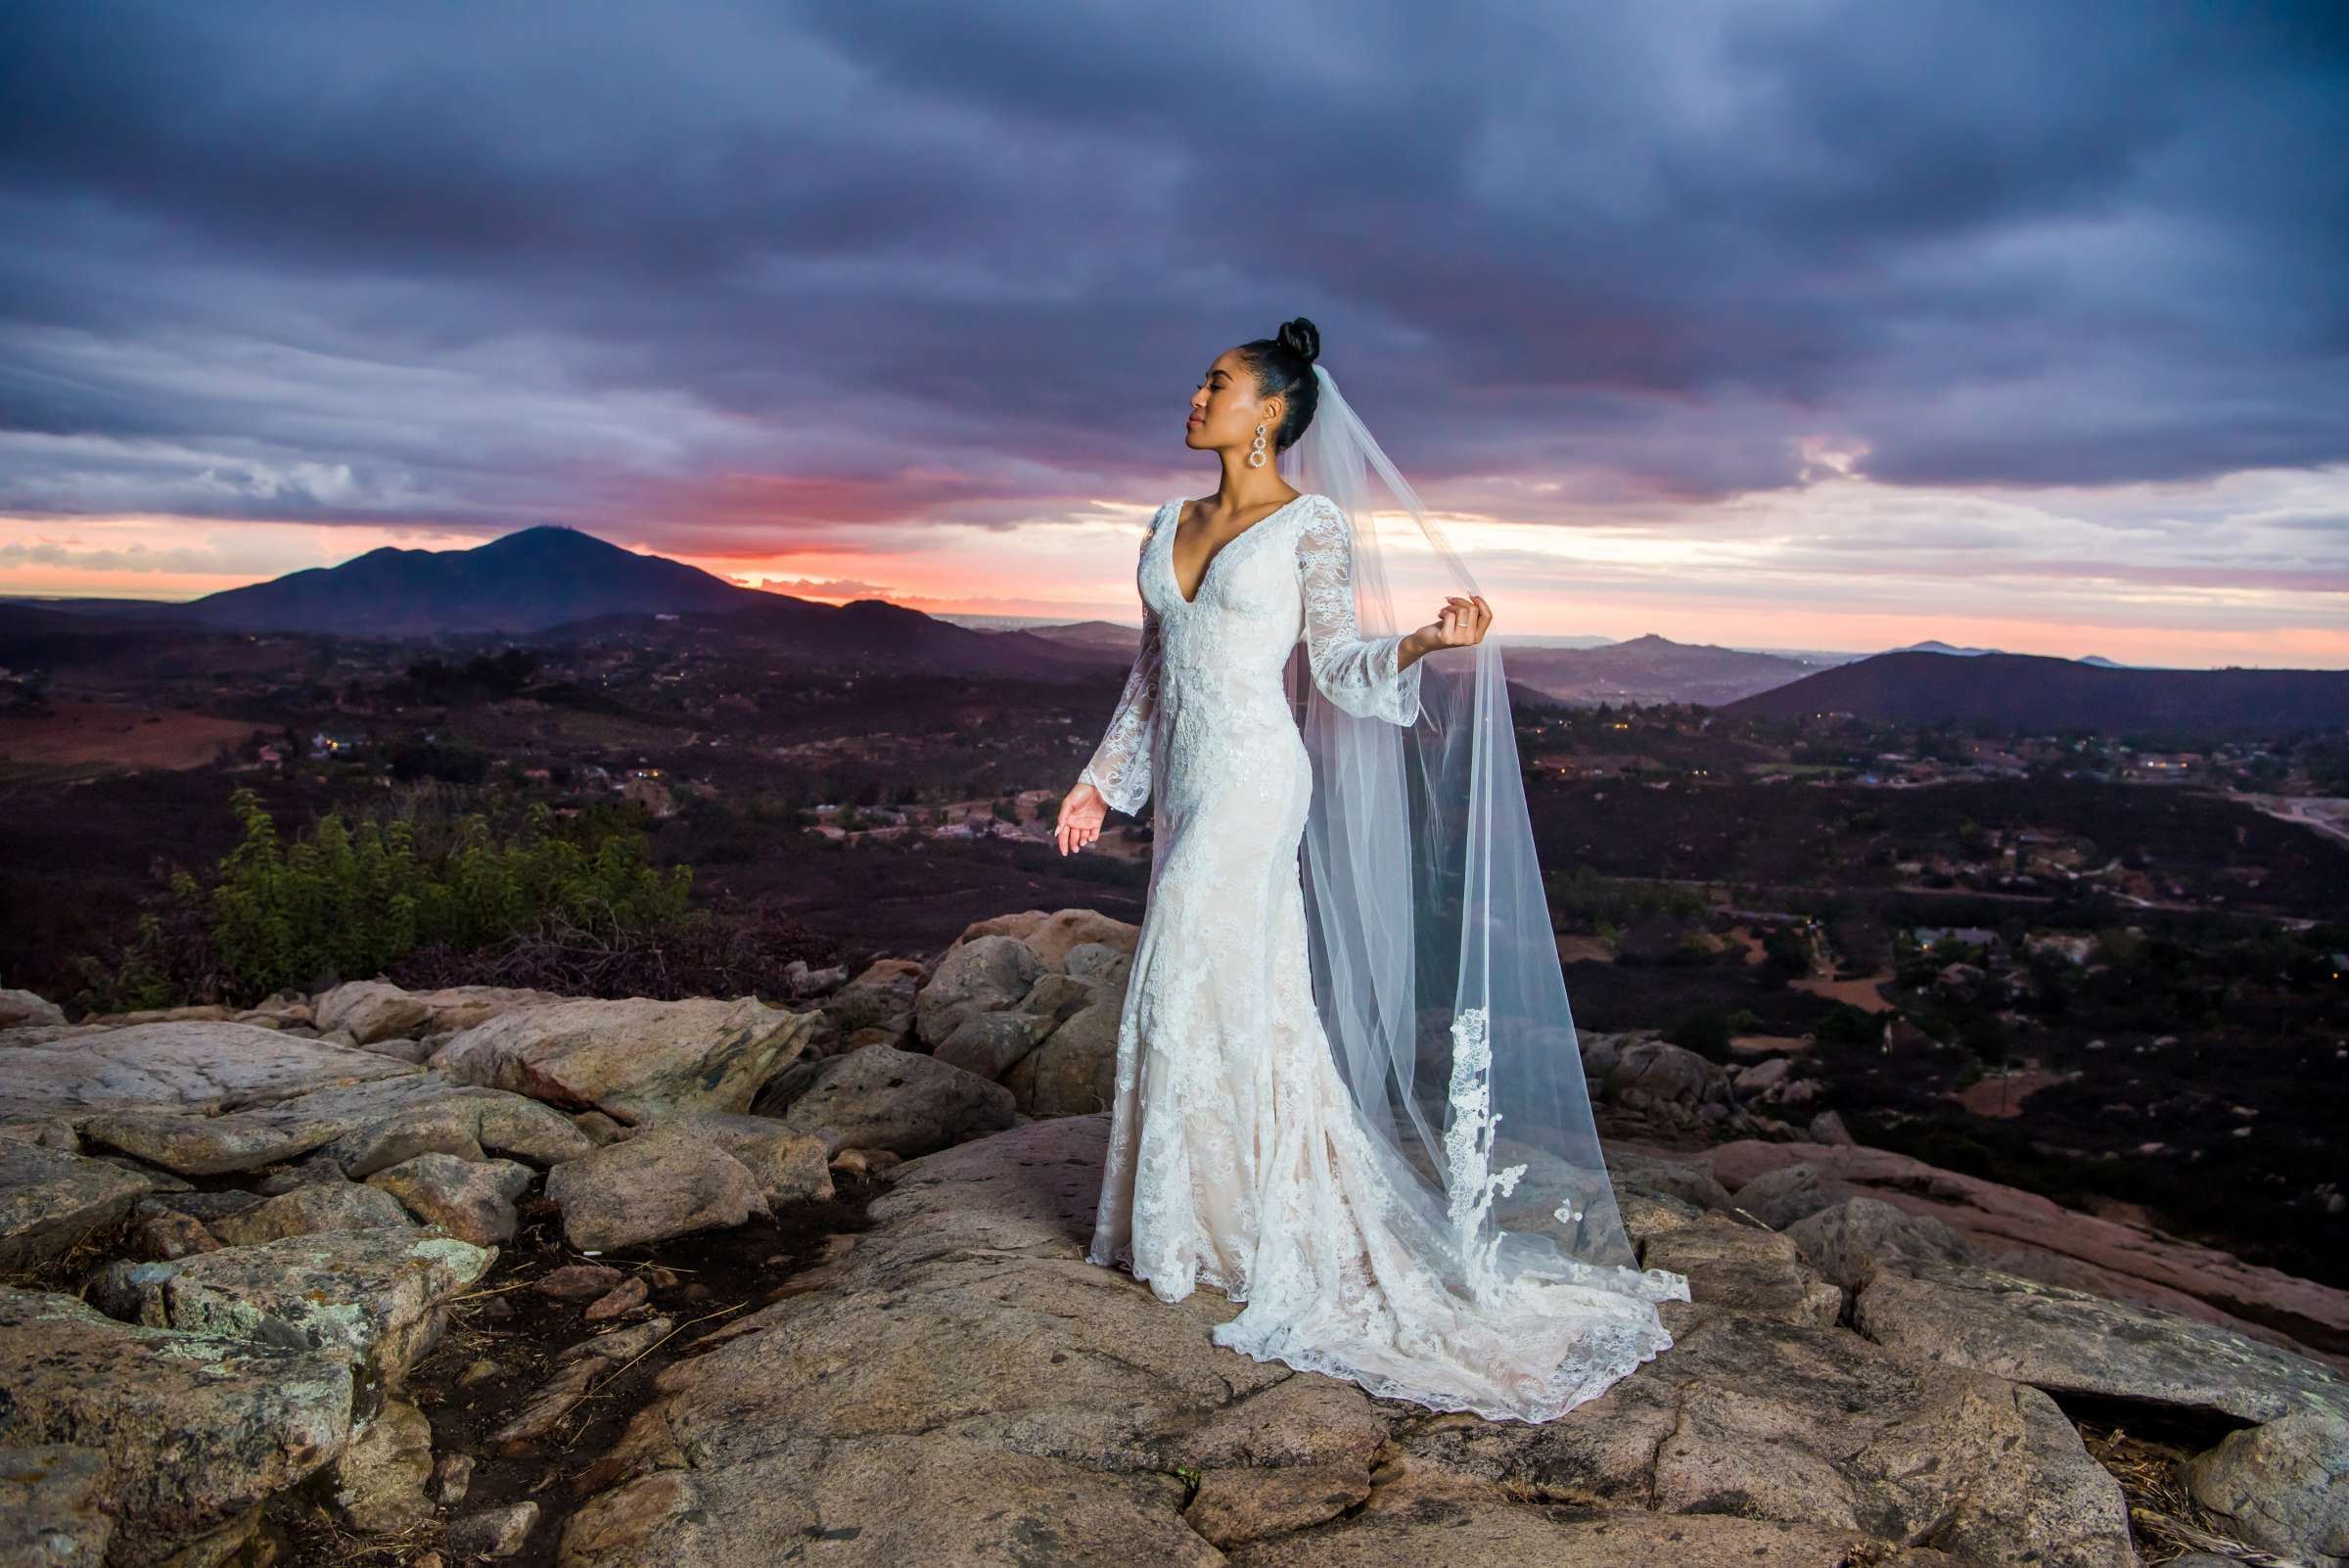 Photographers Favorite at Montana Cielo Wedding coordinated by SD Weddings by Gina, Queen and William Wedding Photo #1 by True Photography